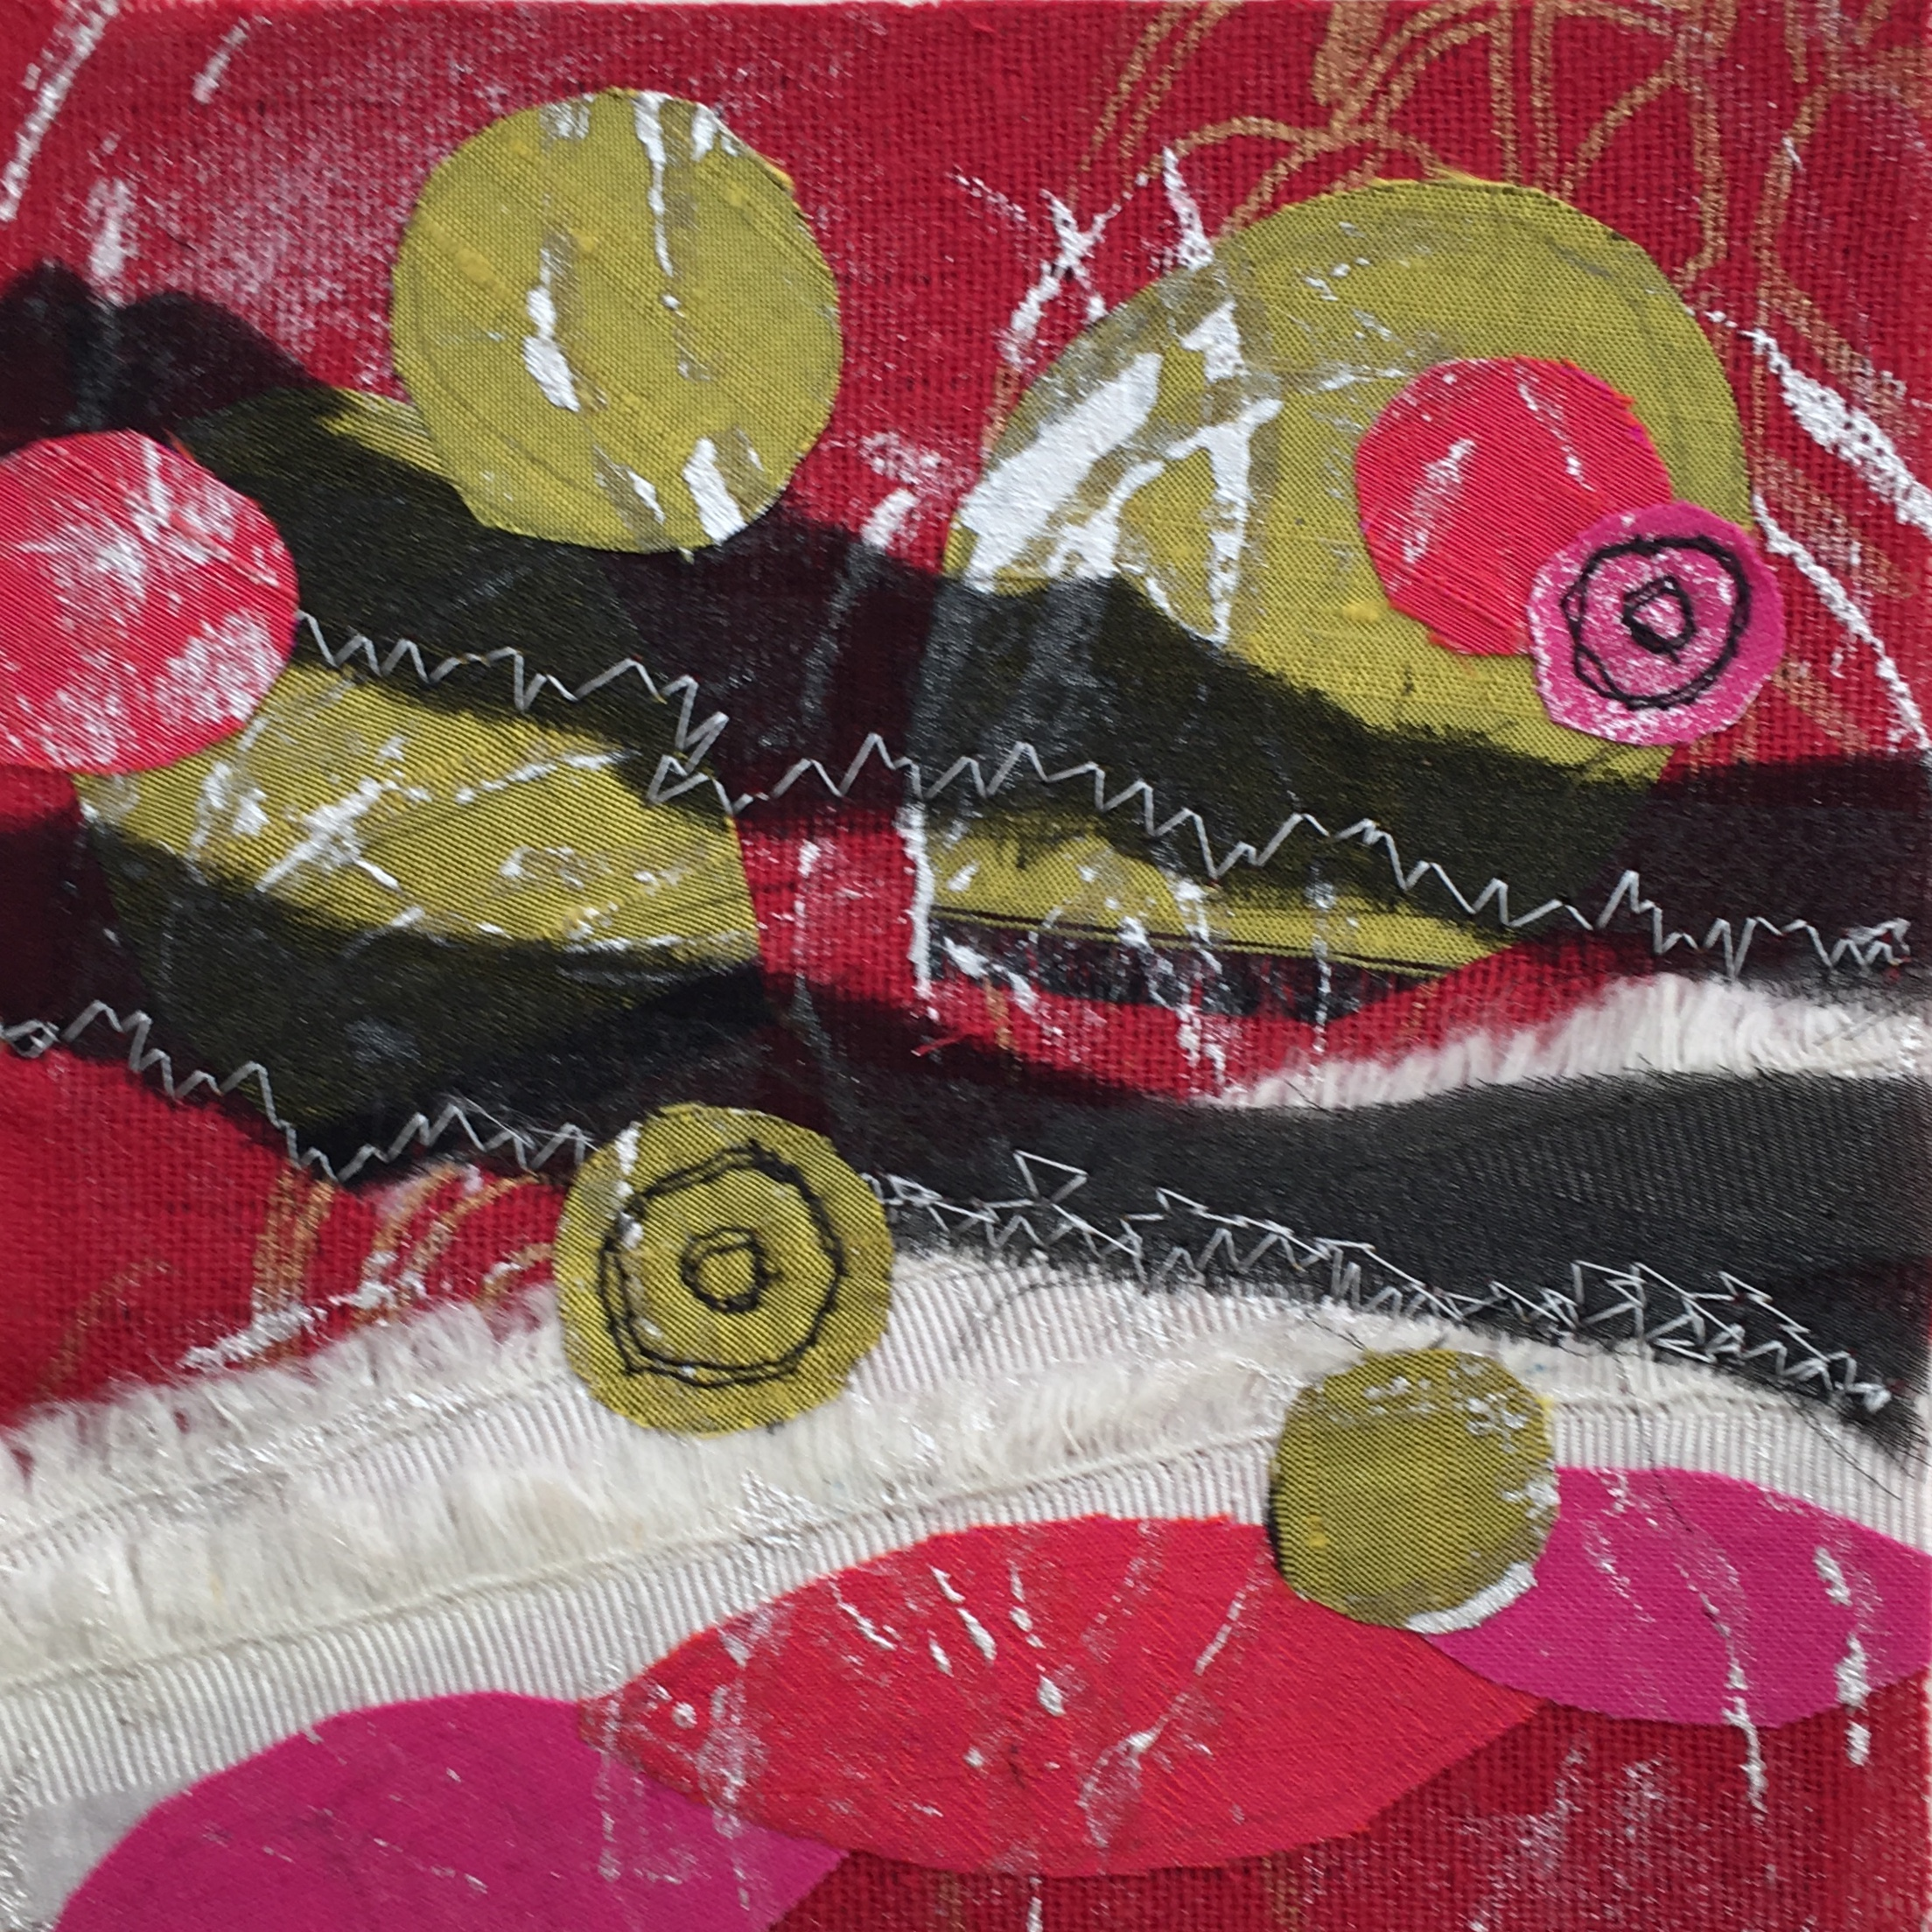 Day 16 - Reclaimed fabric, silk, prints, free-motion stitching.